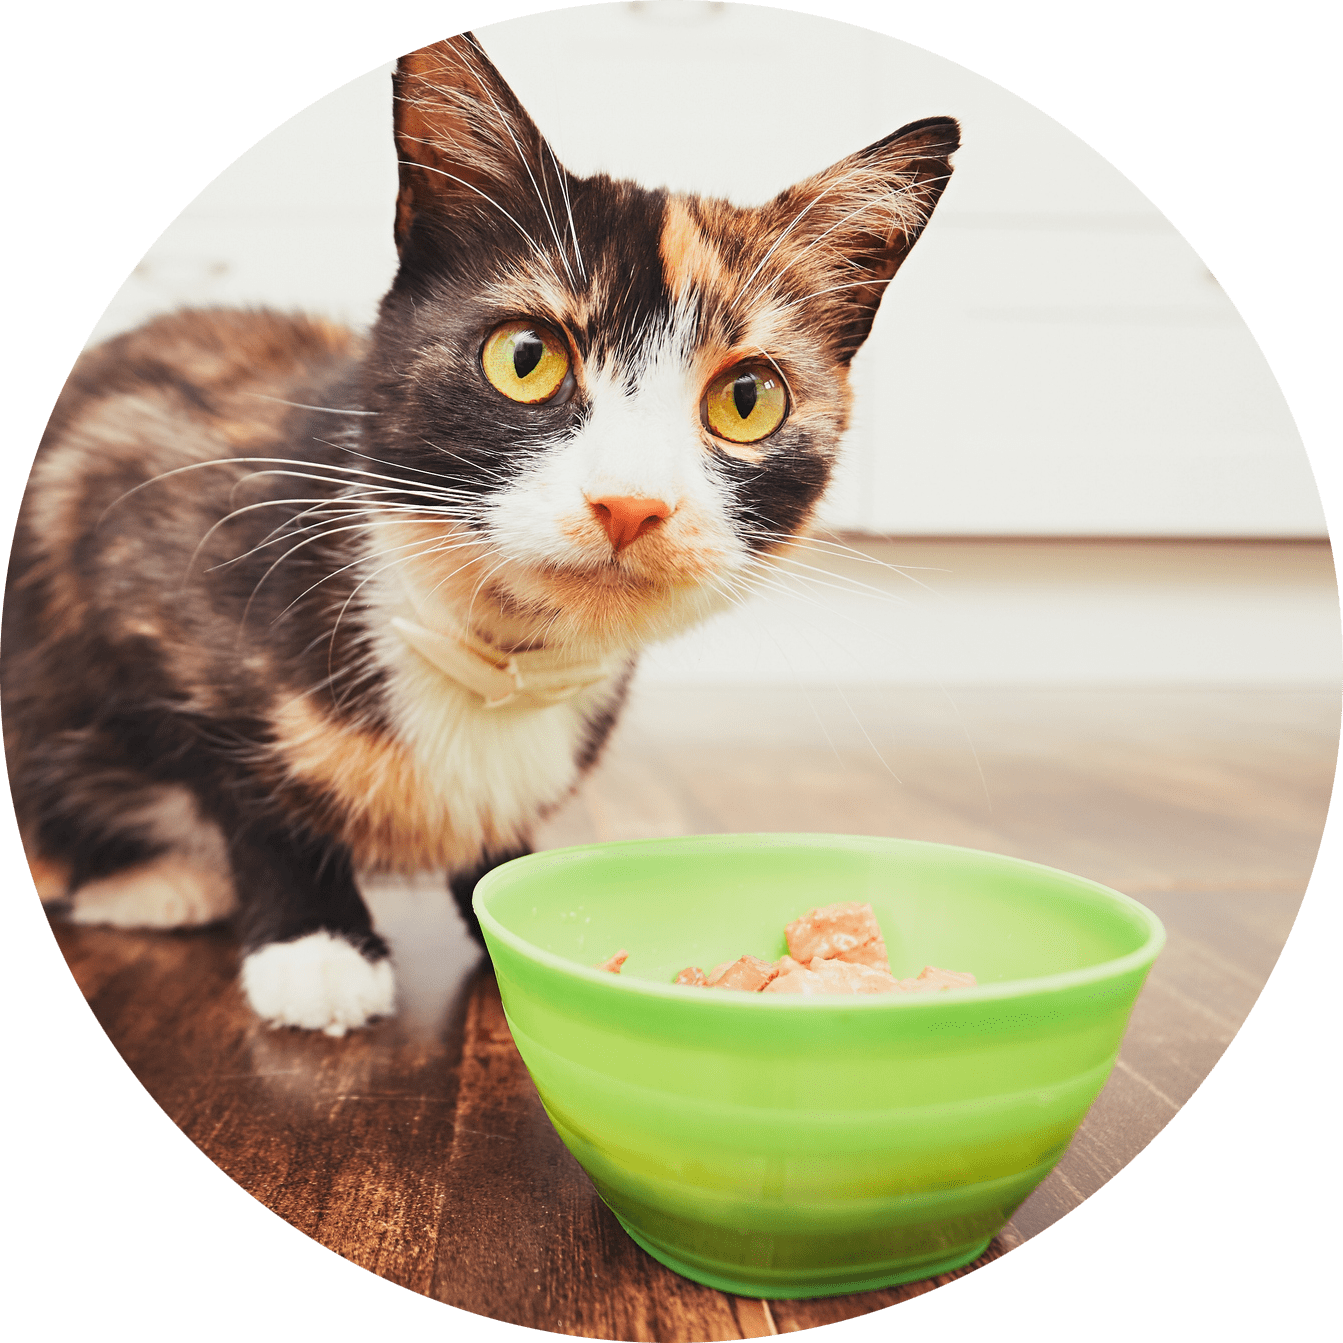 nutritious food for you feline by ruff life of illinois